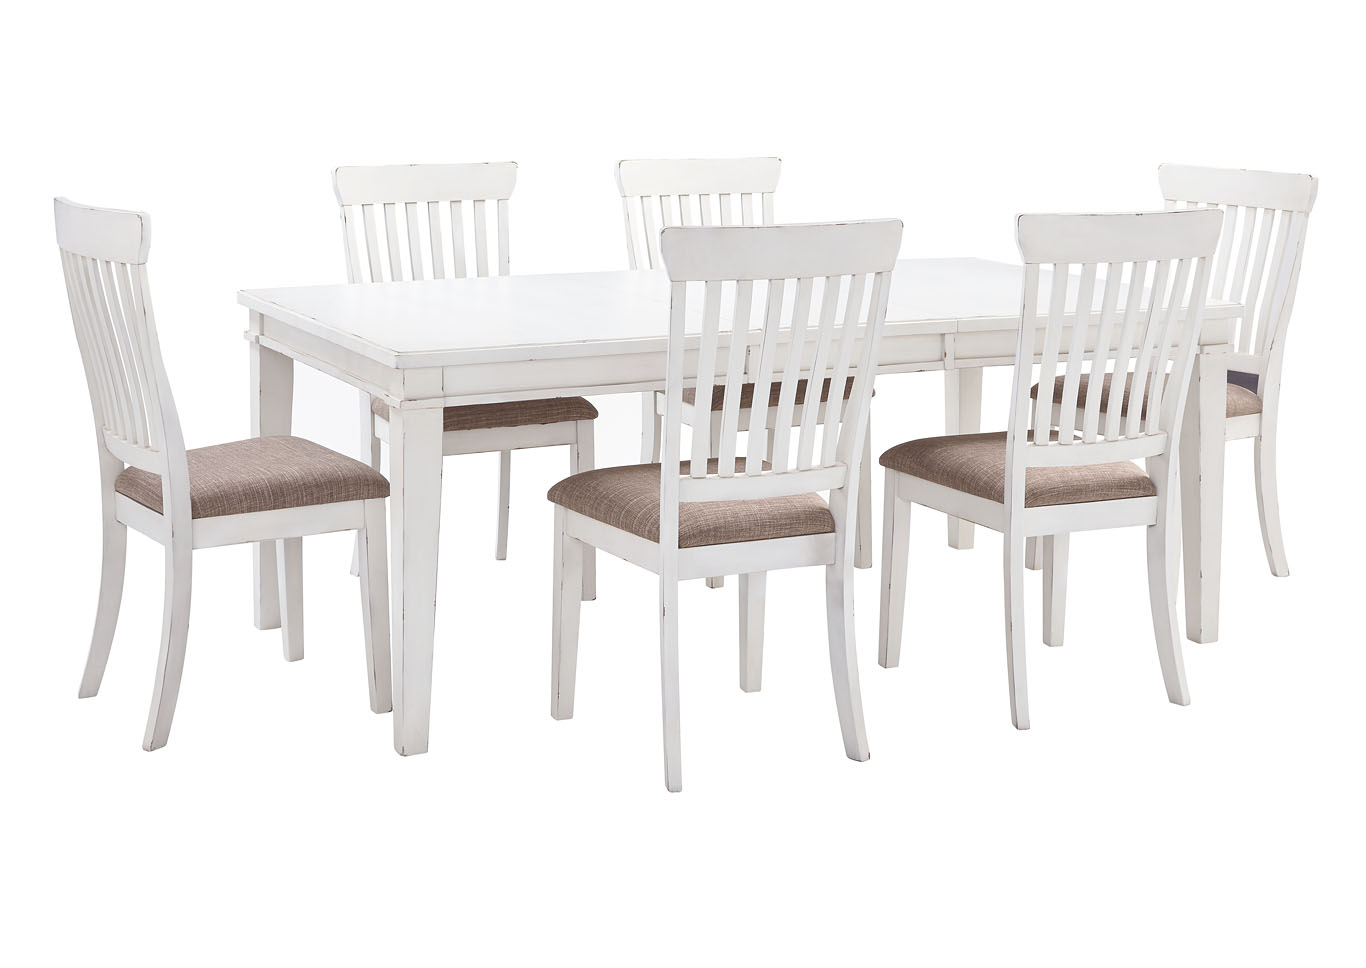 Danbeck White Dining Table Set W And 6 Side ChairsSignature Design